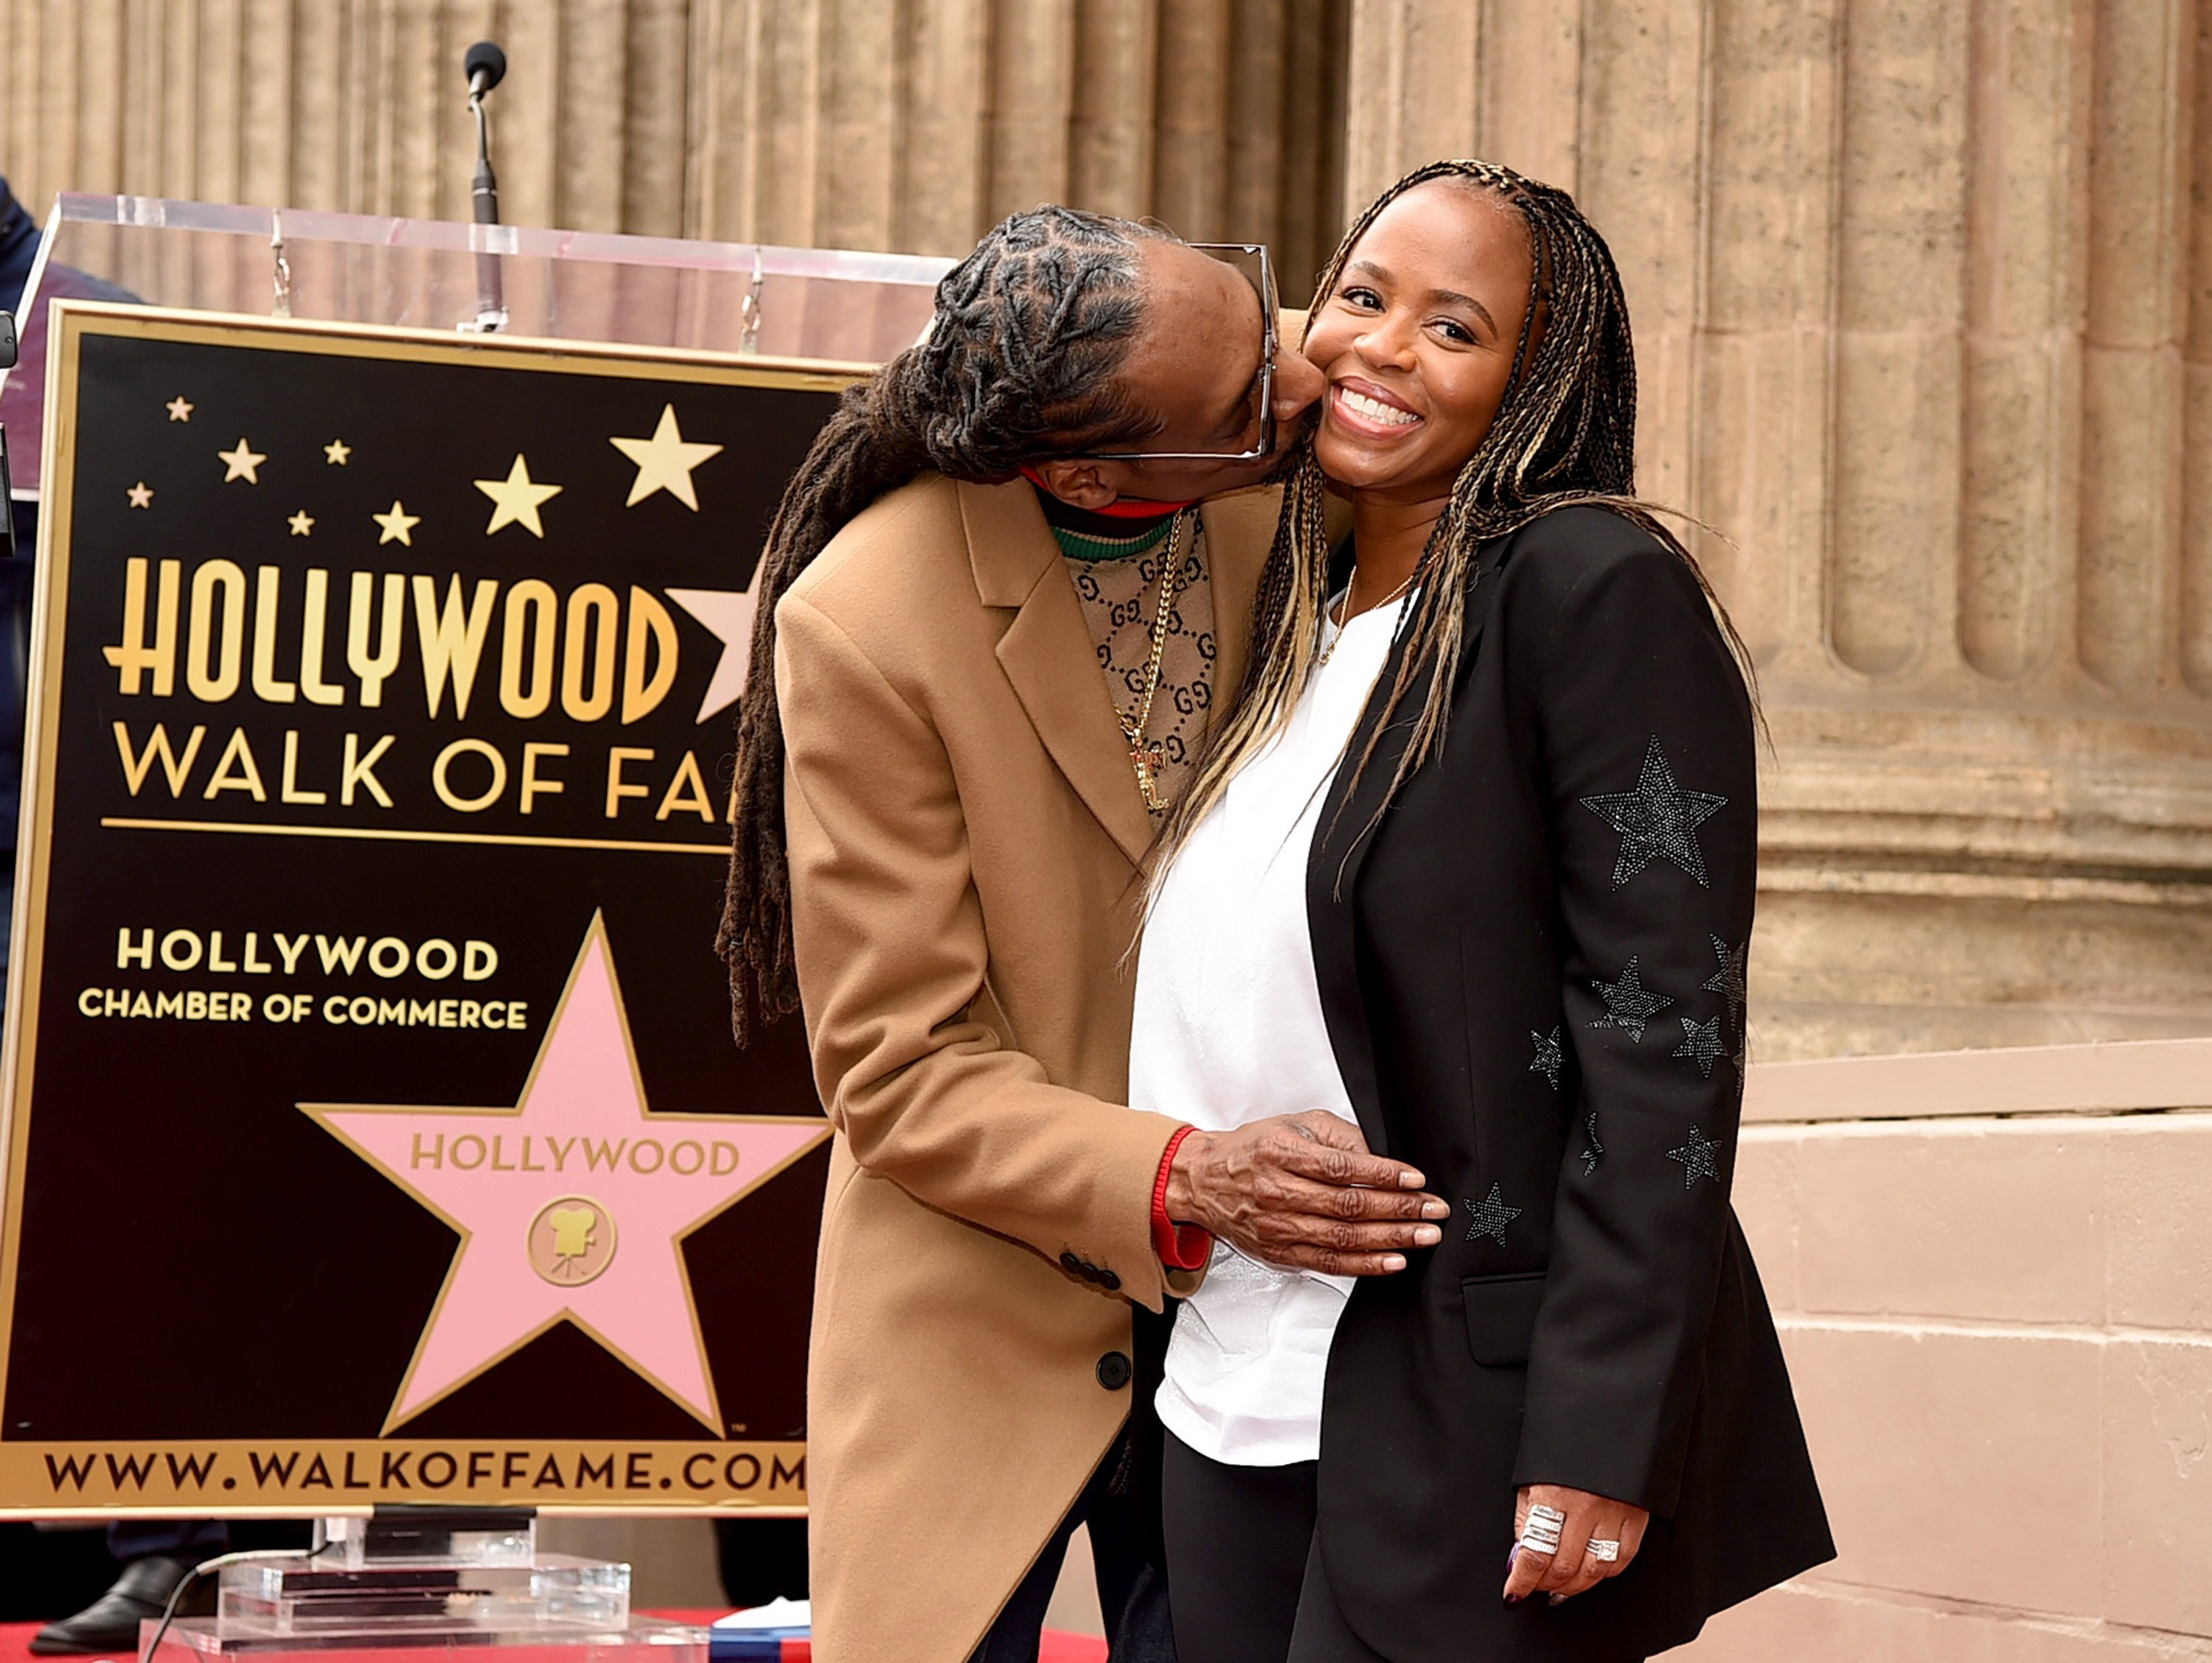 Snoop Dogg and Shante Broadus accept his own Hollywood Walk of Fame Star on November 19, 2018.   Photo: Getty Images